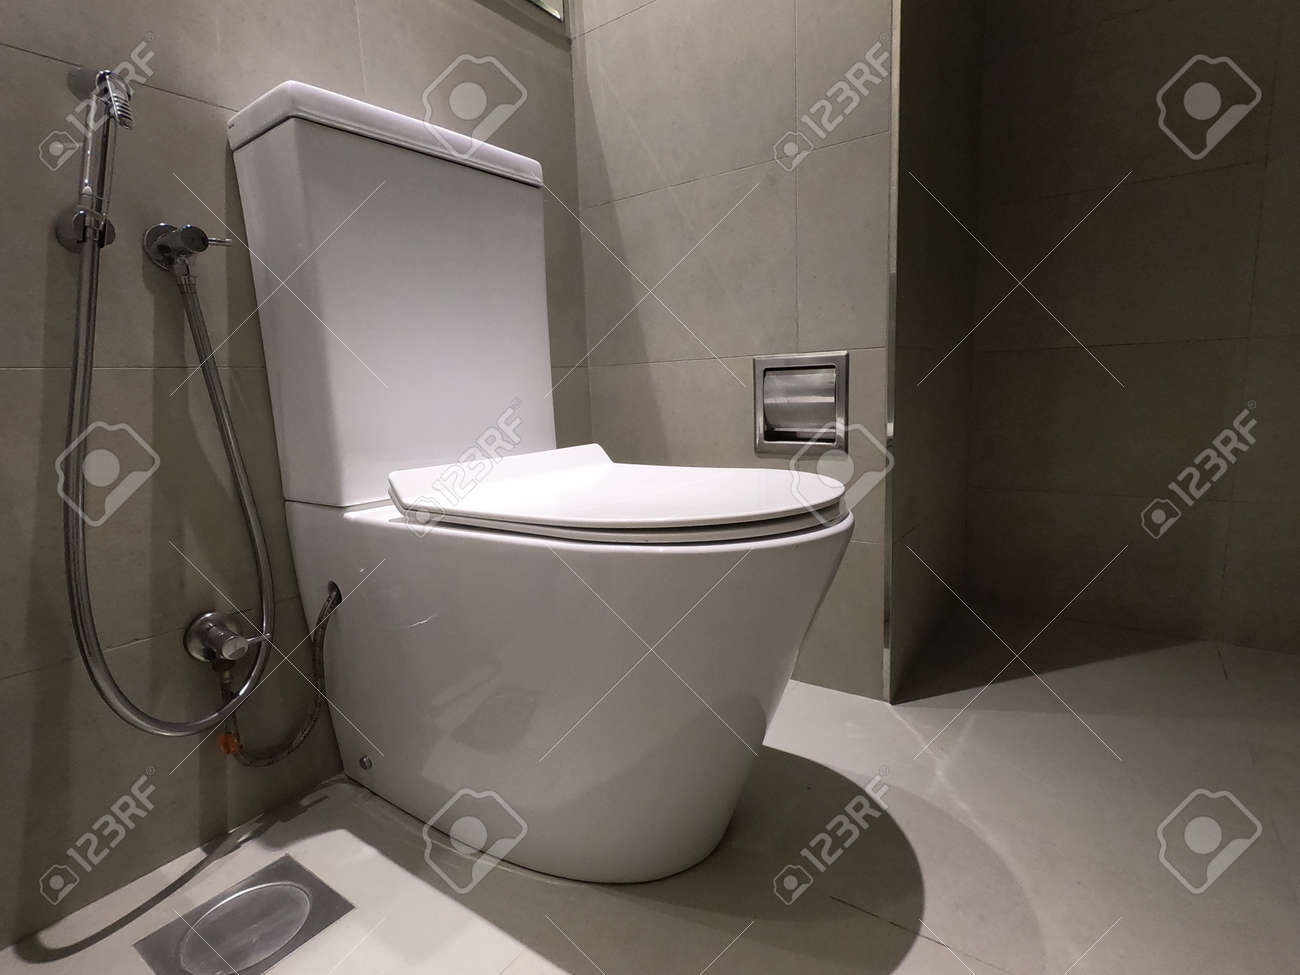 new ceramic toilet bowl faucet and paper holder toilet bowl